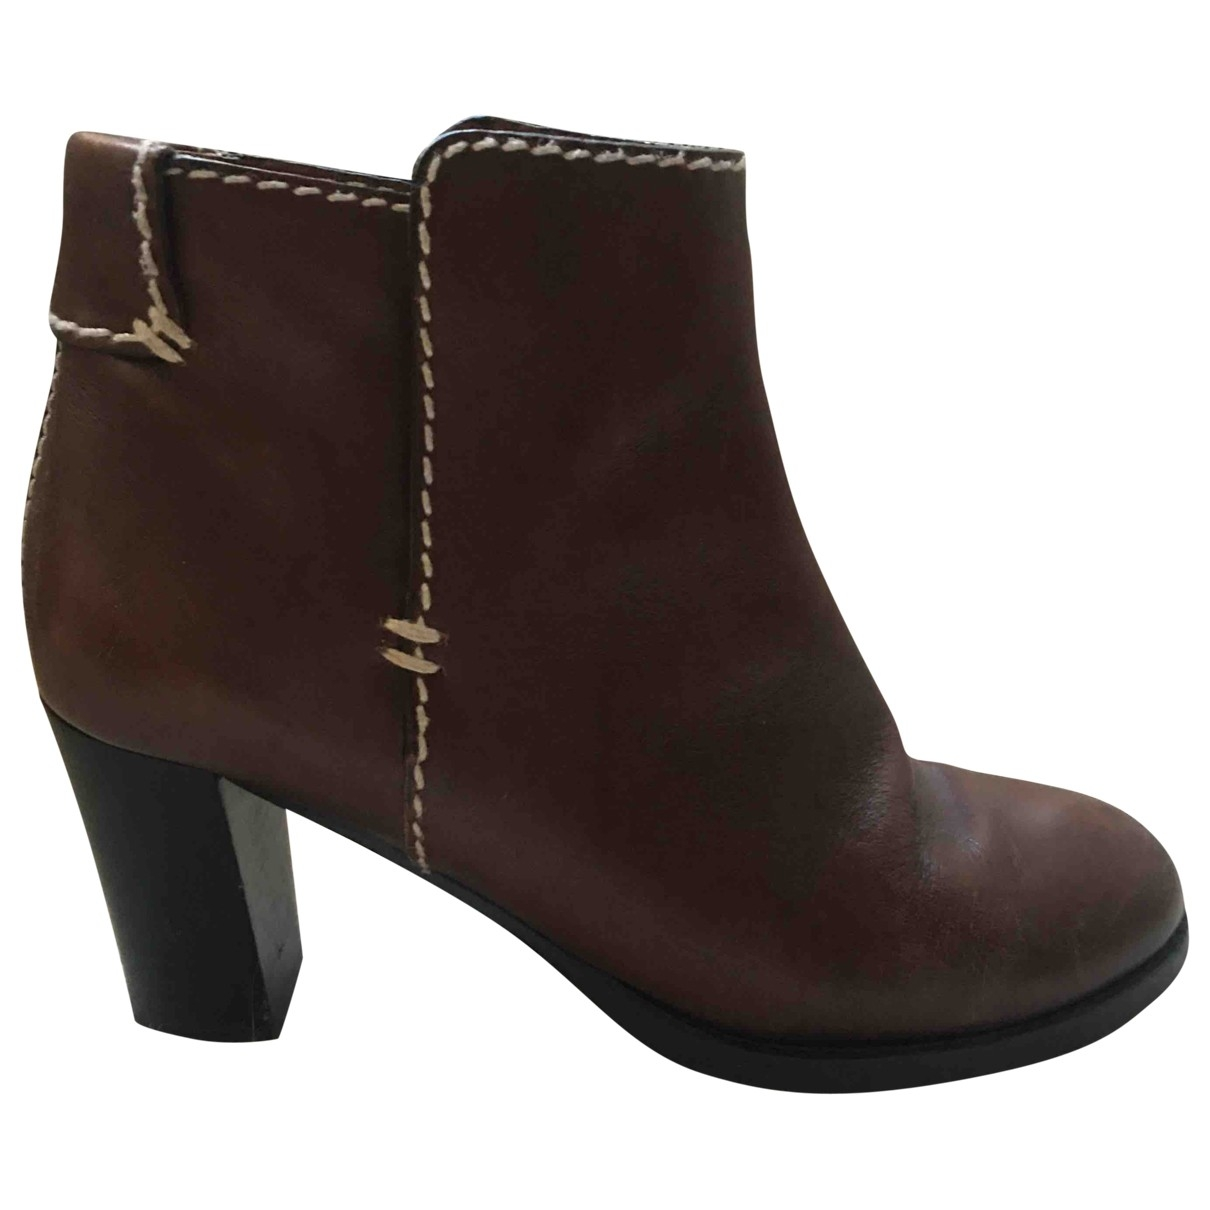 Chloé \N Brown Leather Ankle boots for Women 39.5 EU